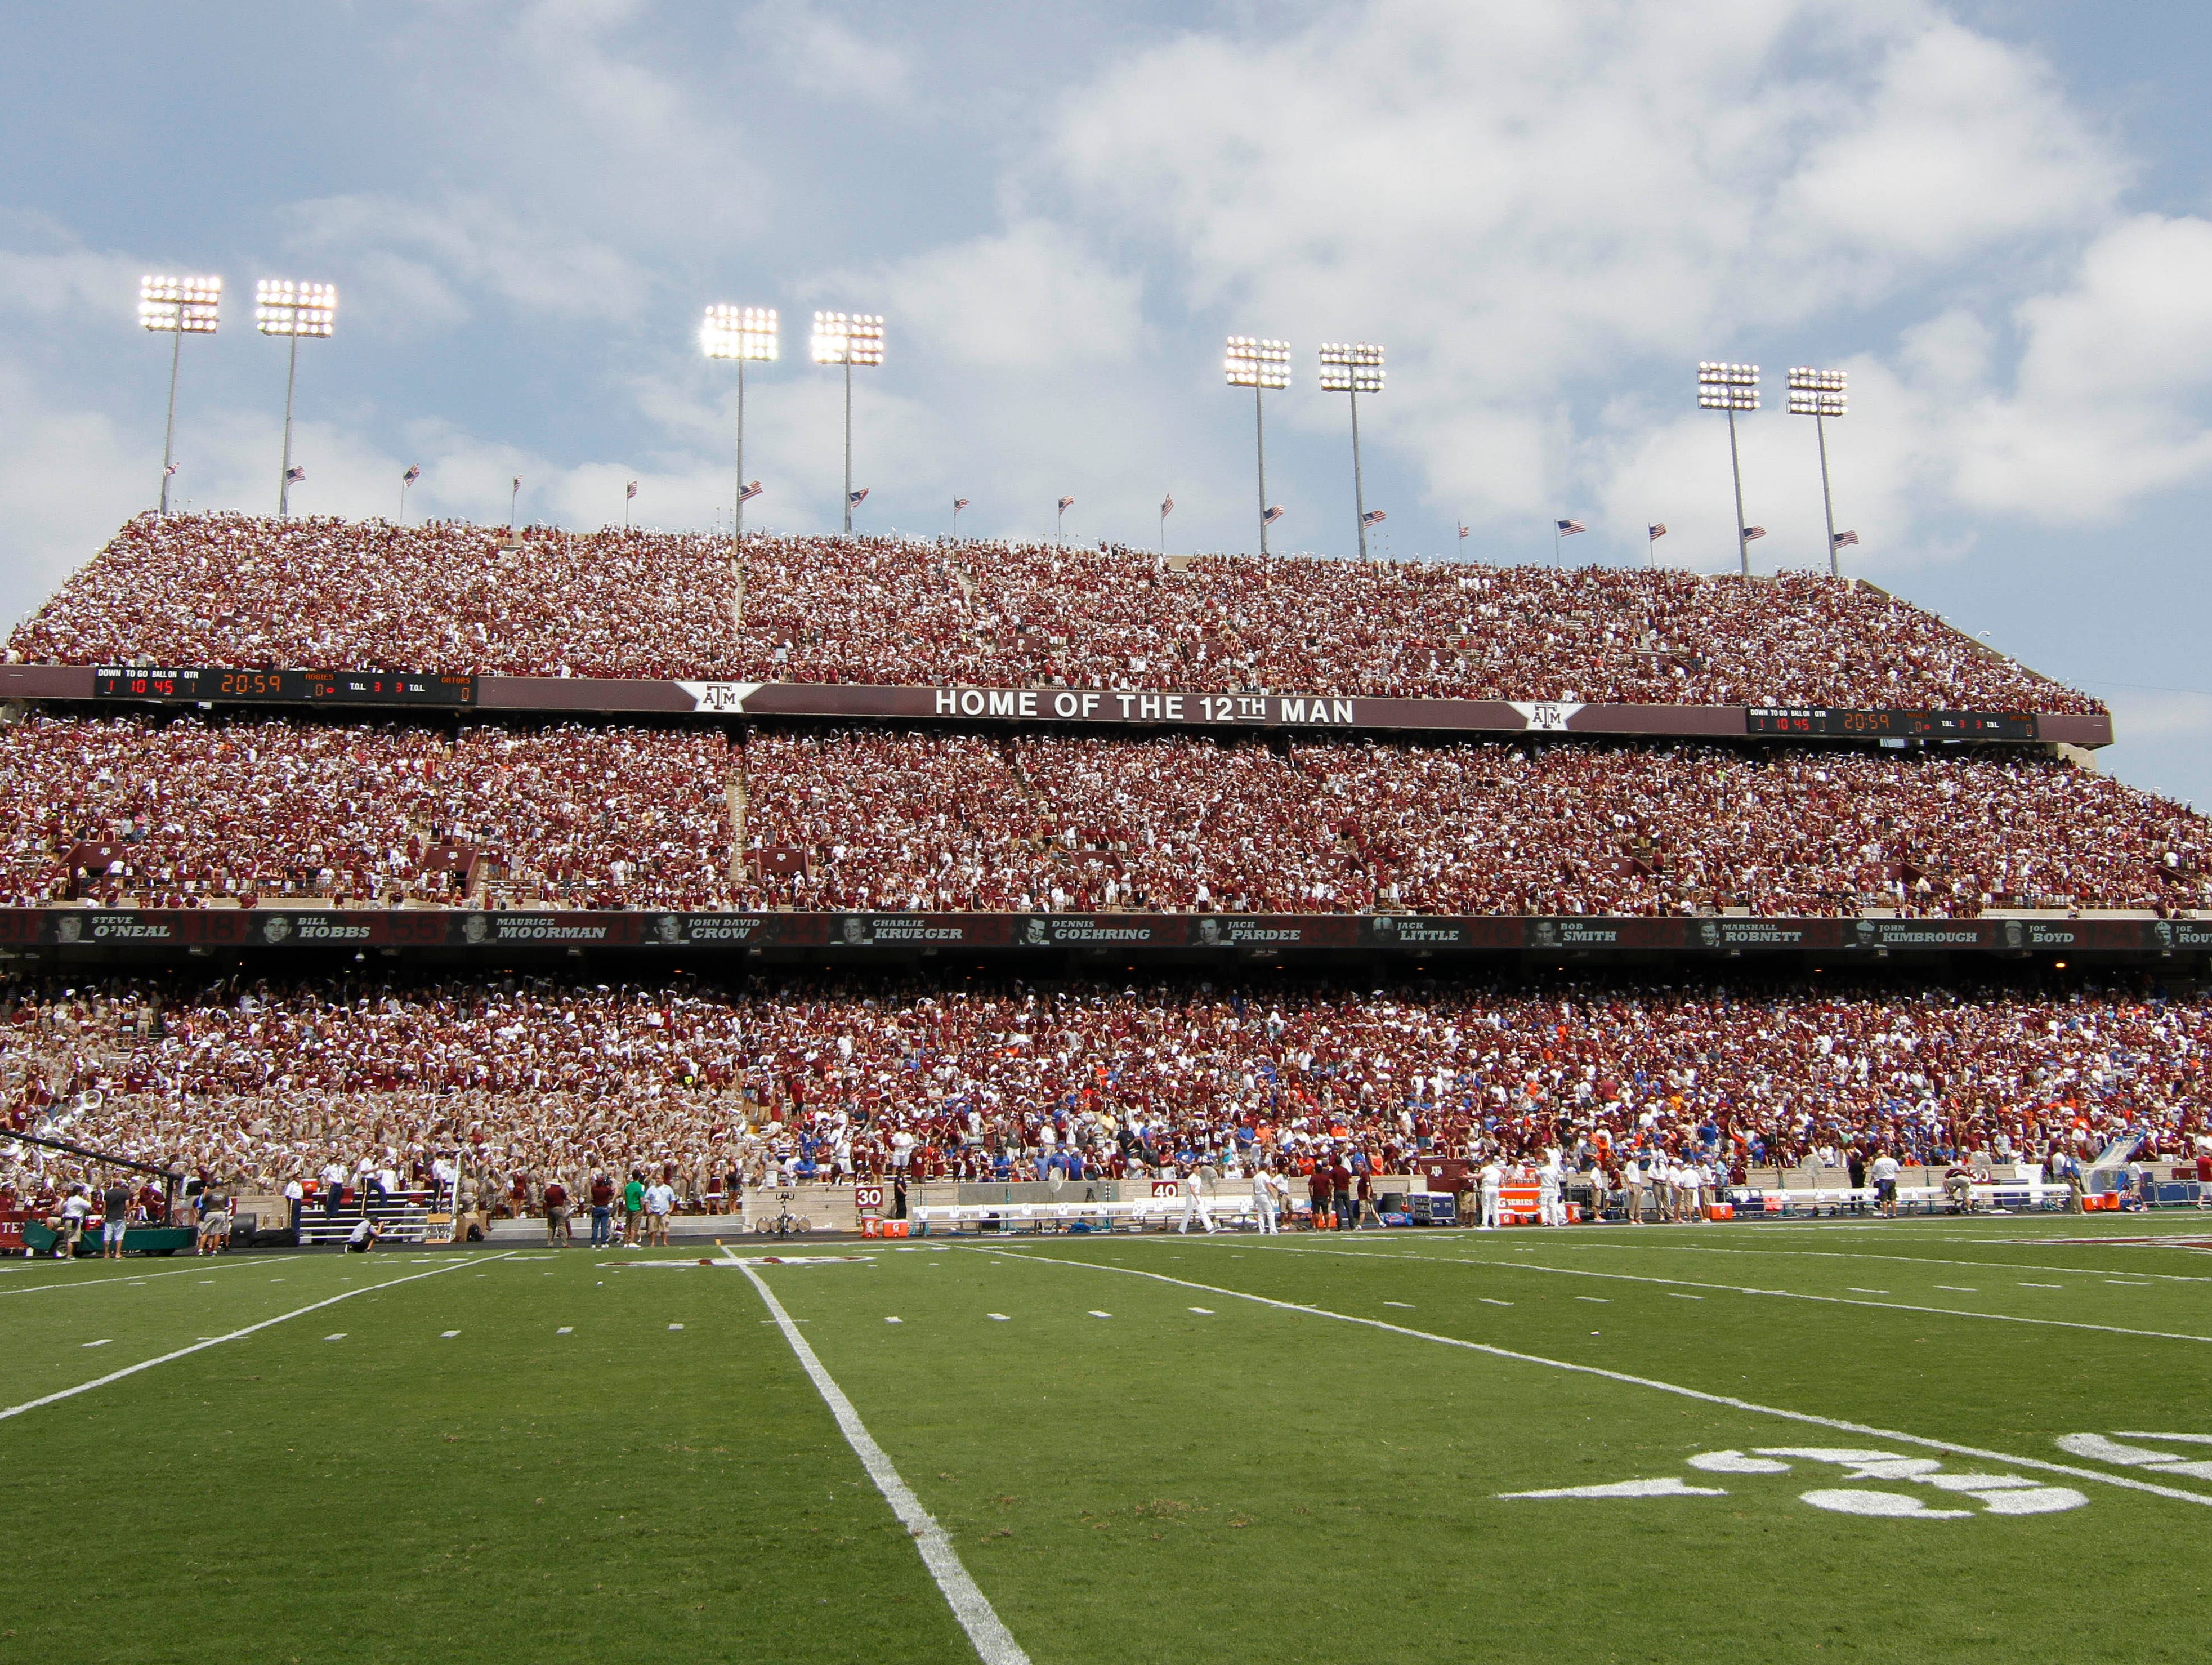 """Kyle Field, Texas A&M: The experience begins the night before the kickoff when thousands of fans show up for midnight yell practice led by the school's Corps of Cadets. Those yells are part of the game-day traditions of the school that is also home of the """"12th Man."""""""